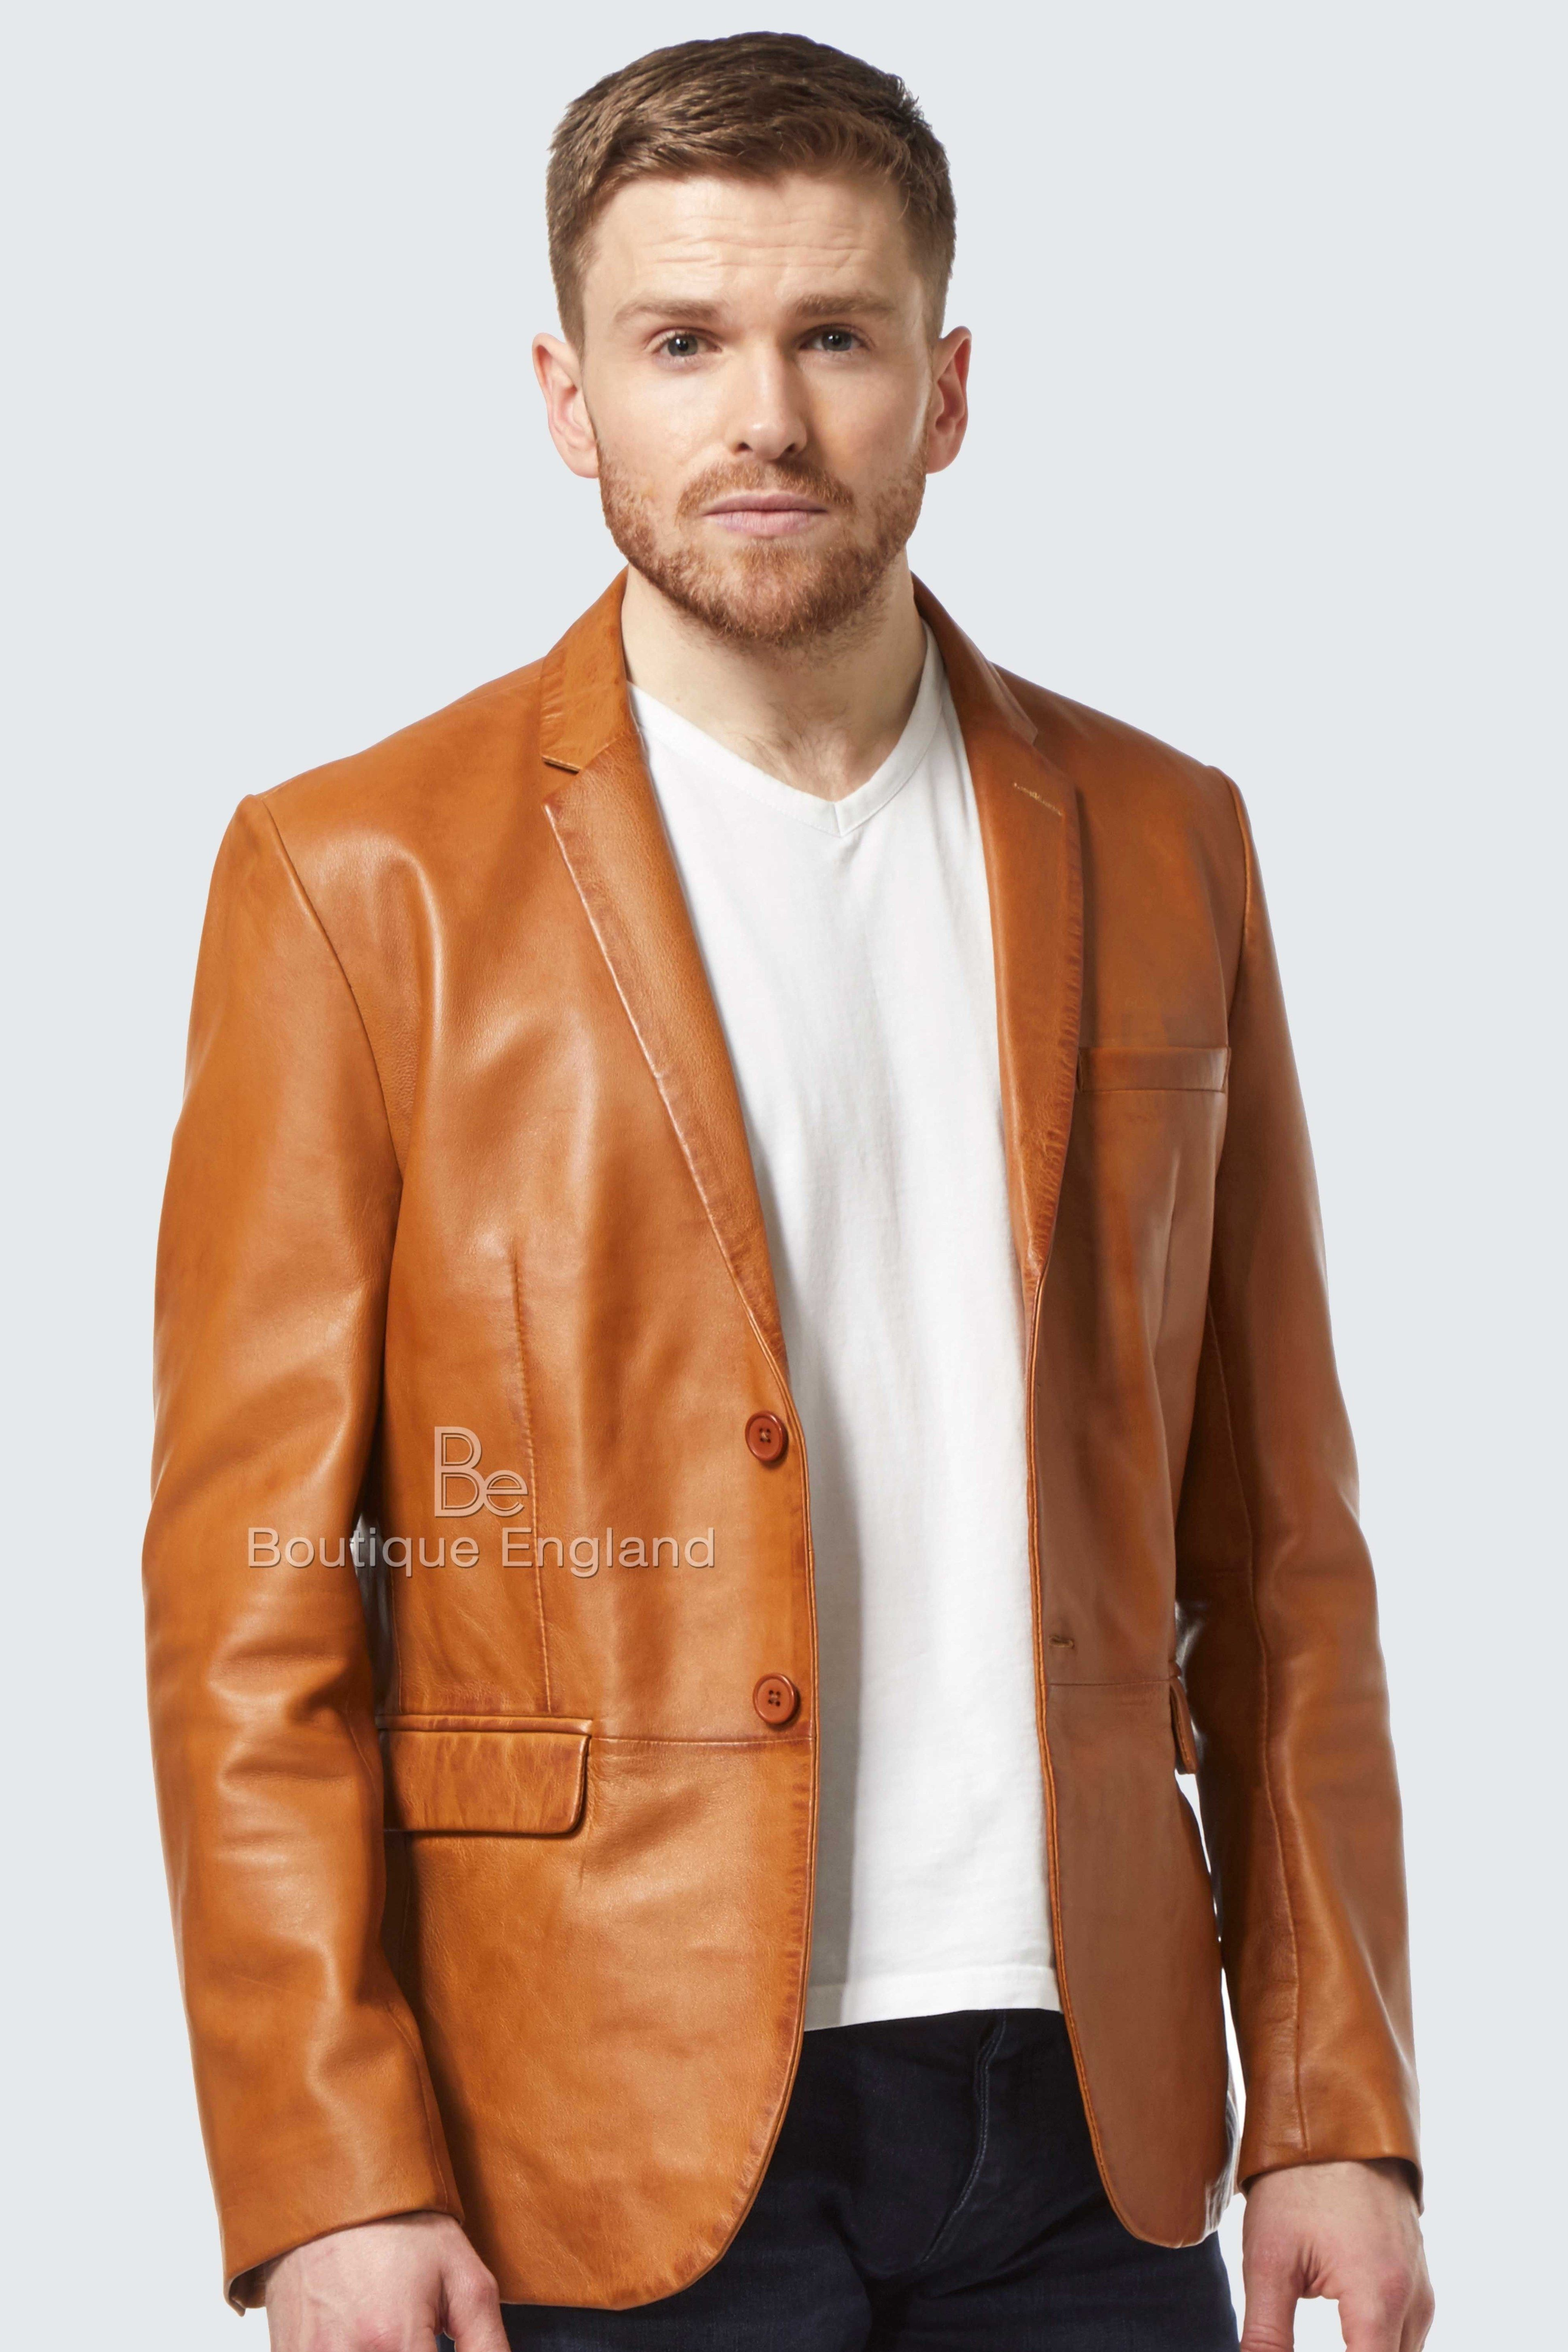 Mens leather jackets. Leather jackets are a very important